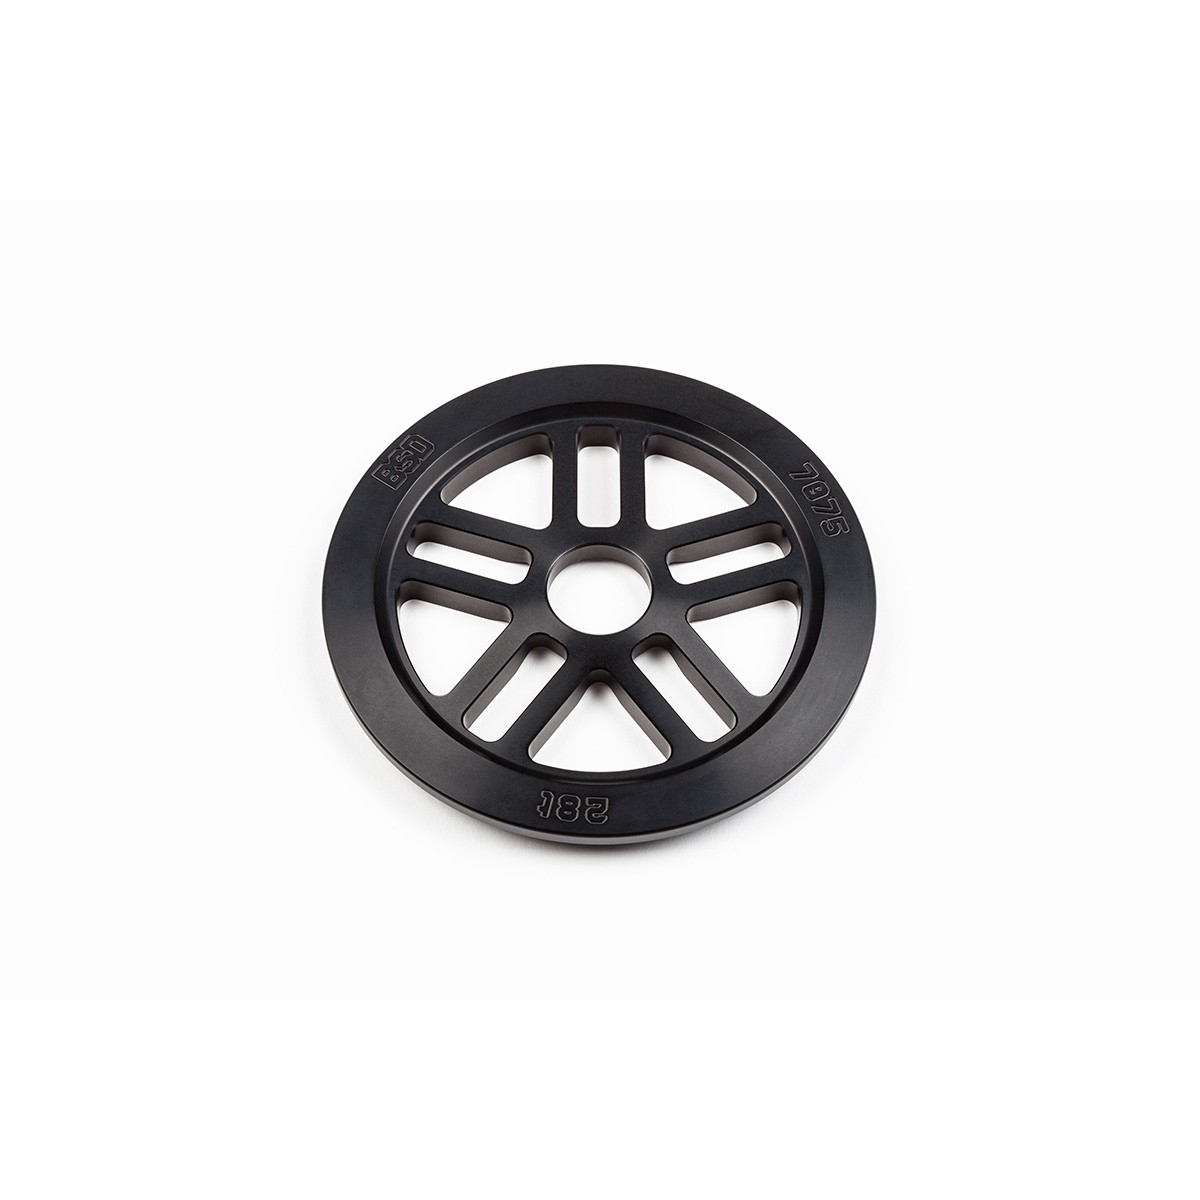 Couronne BMX BSD Guard Sprocket 25 dents Noir